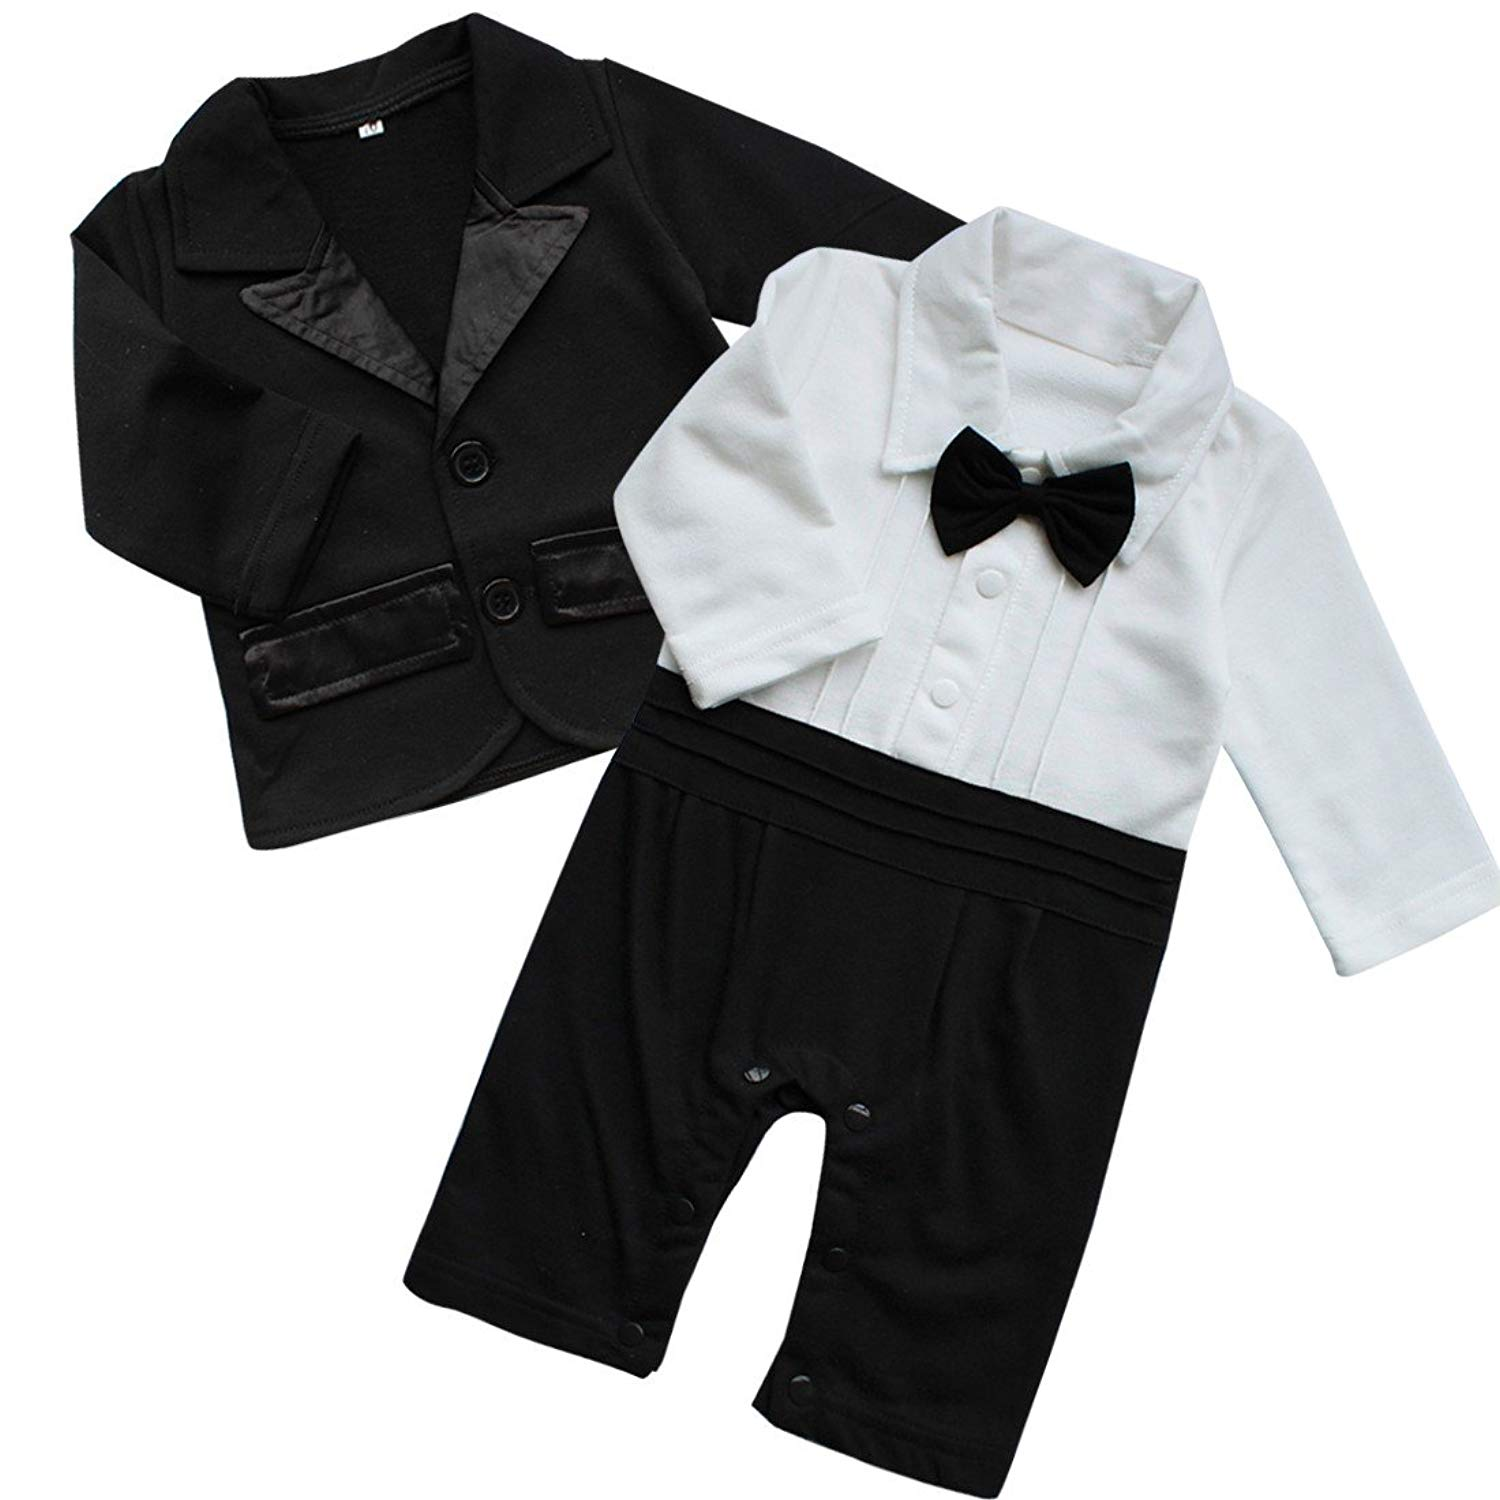 d8880becf46b2 Get Quotations · YiZYiF Baby Boys  Long Sleeve 2Pcs Gentleman Romper Suit  With Bowtie